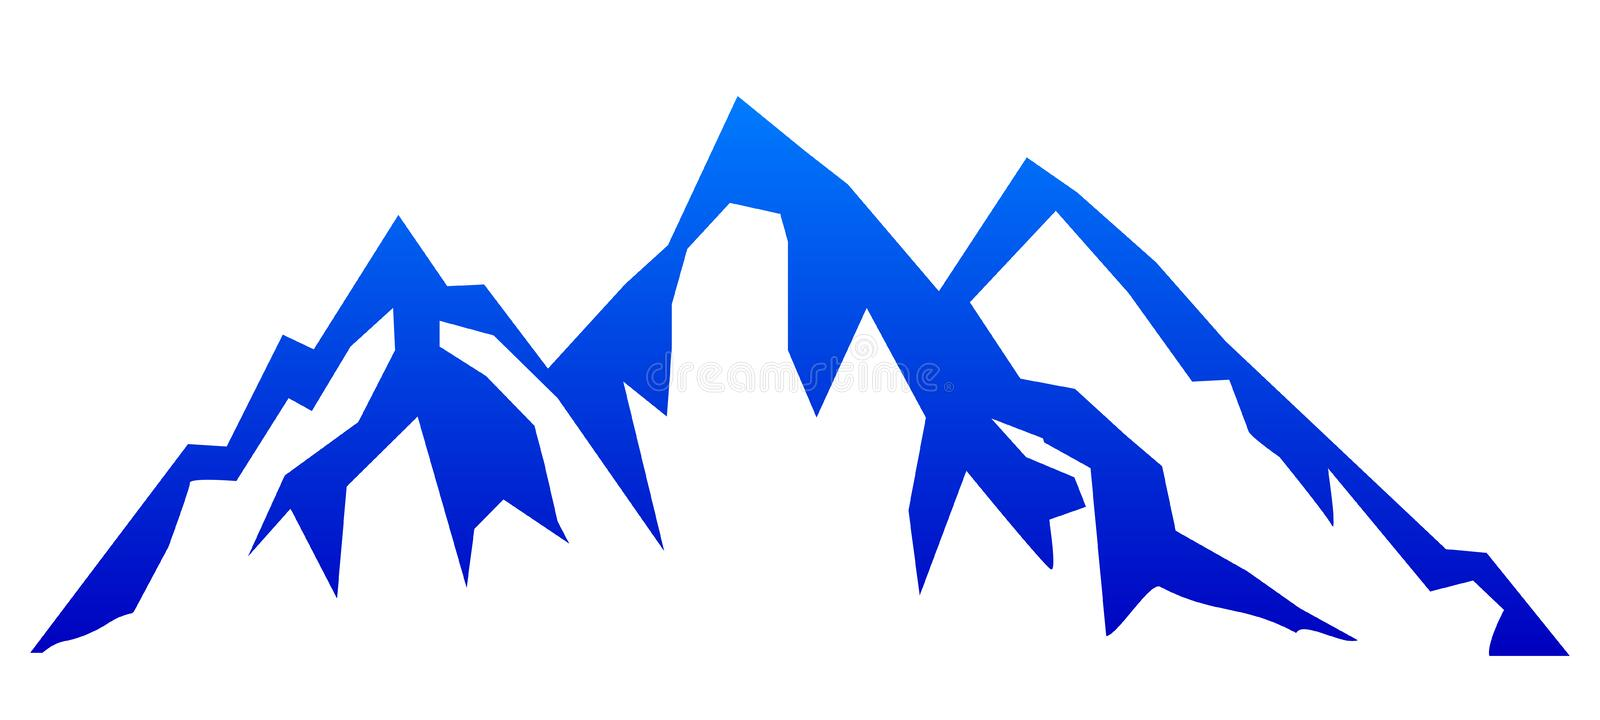 Silhouette blue mountain with three peaks on white background  for stock stock image